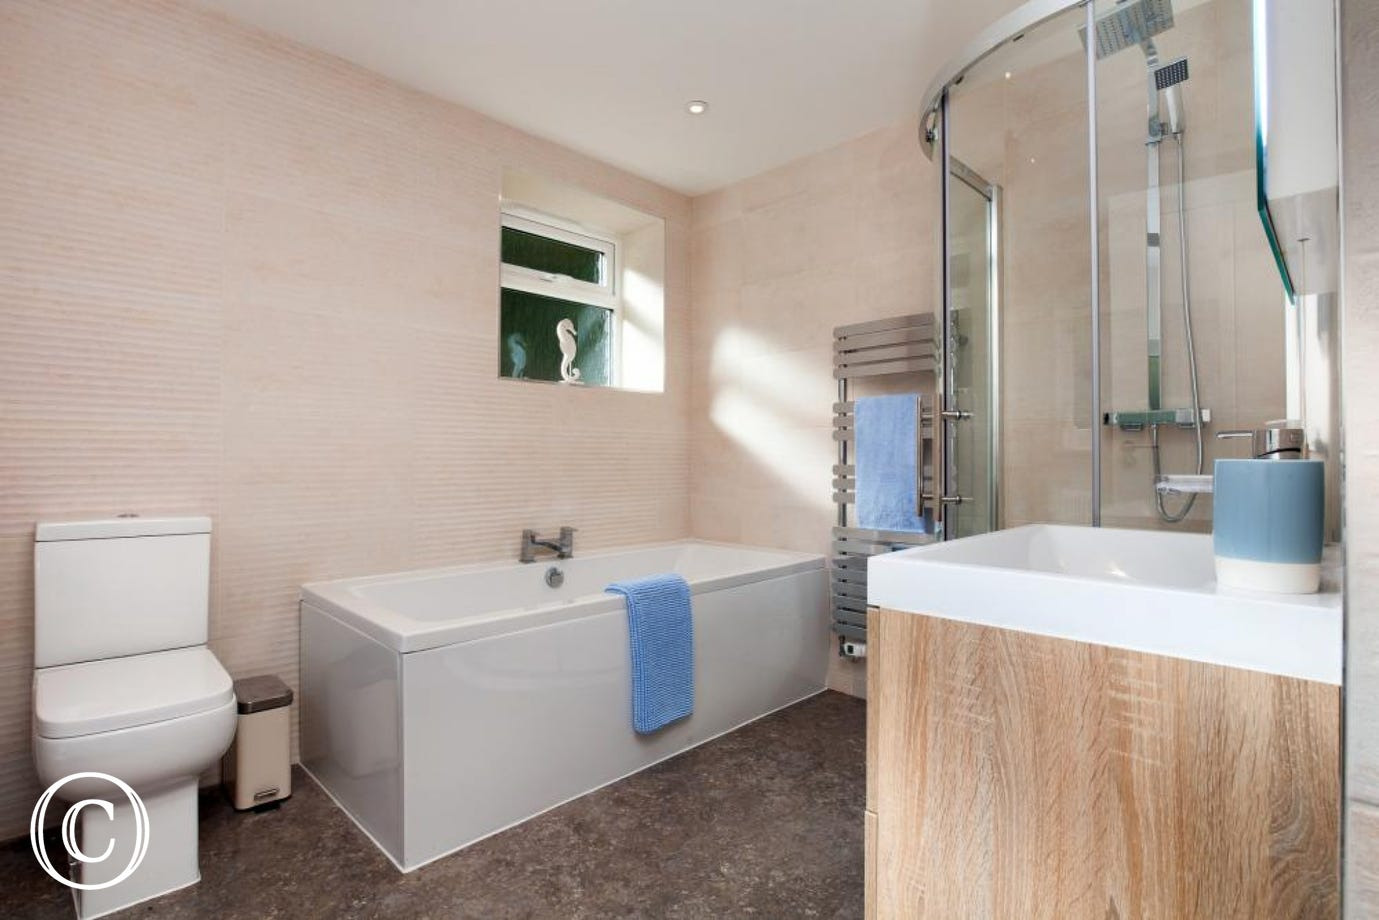 Ground floor bathroom at Ness Dene House